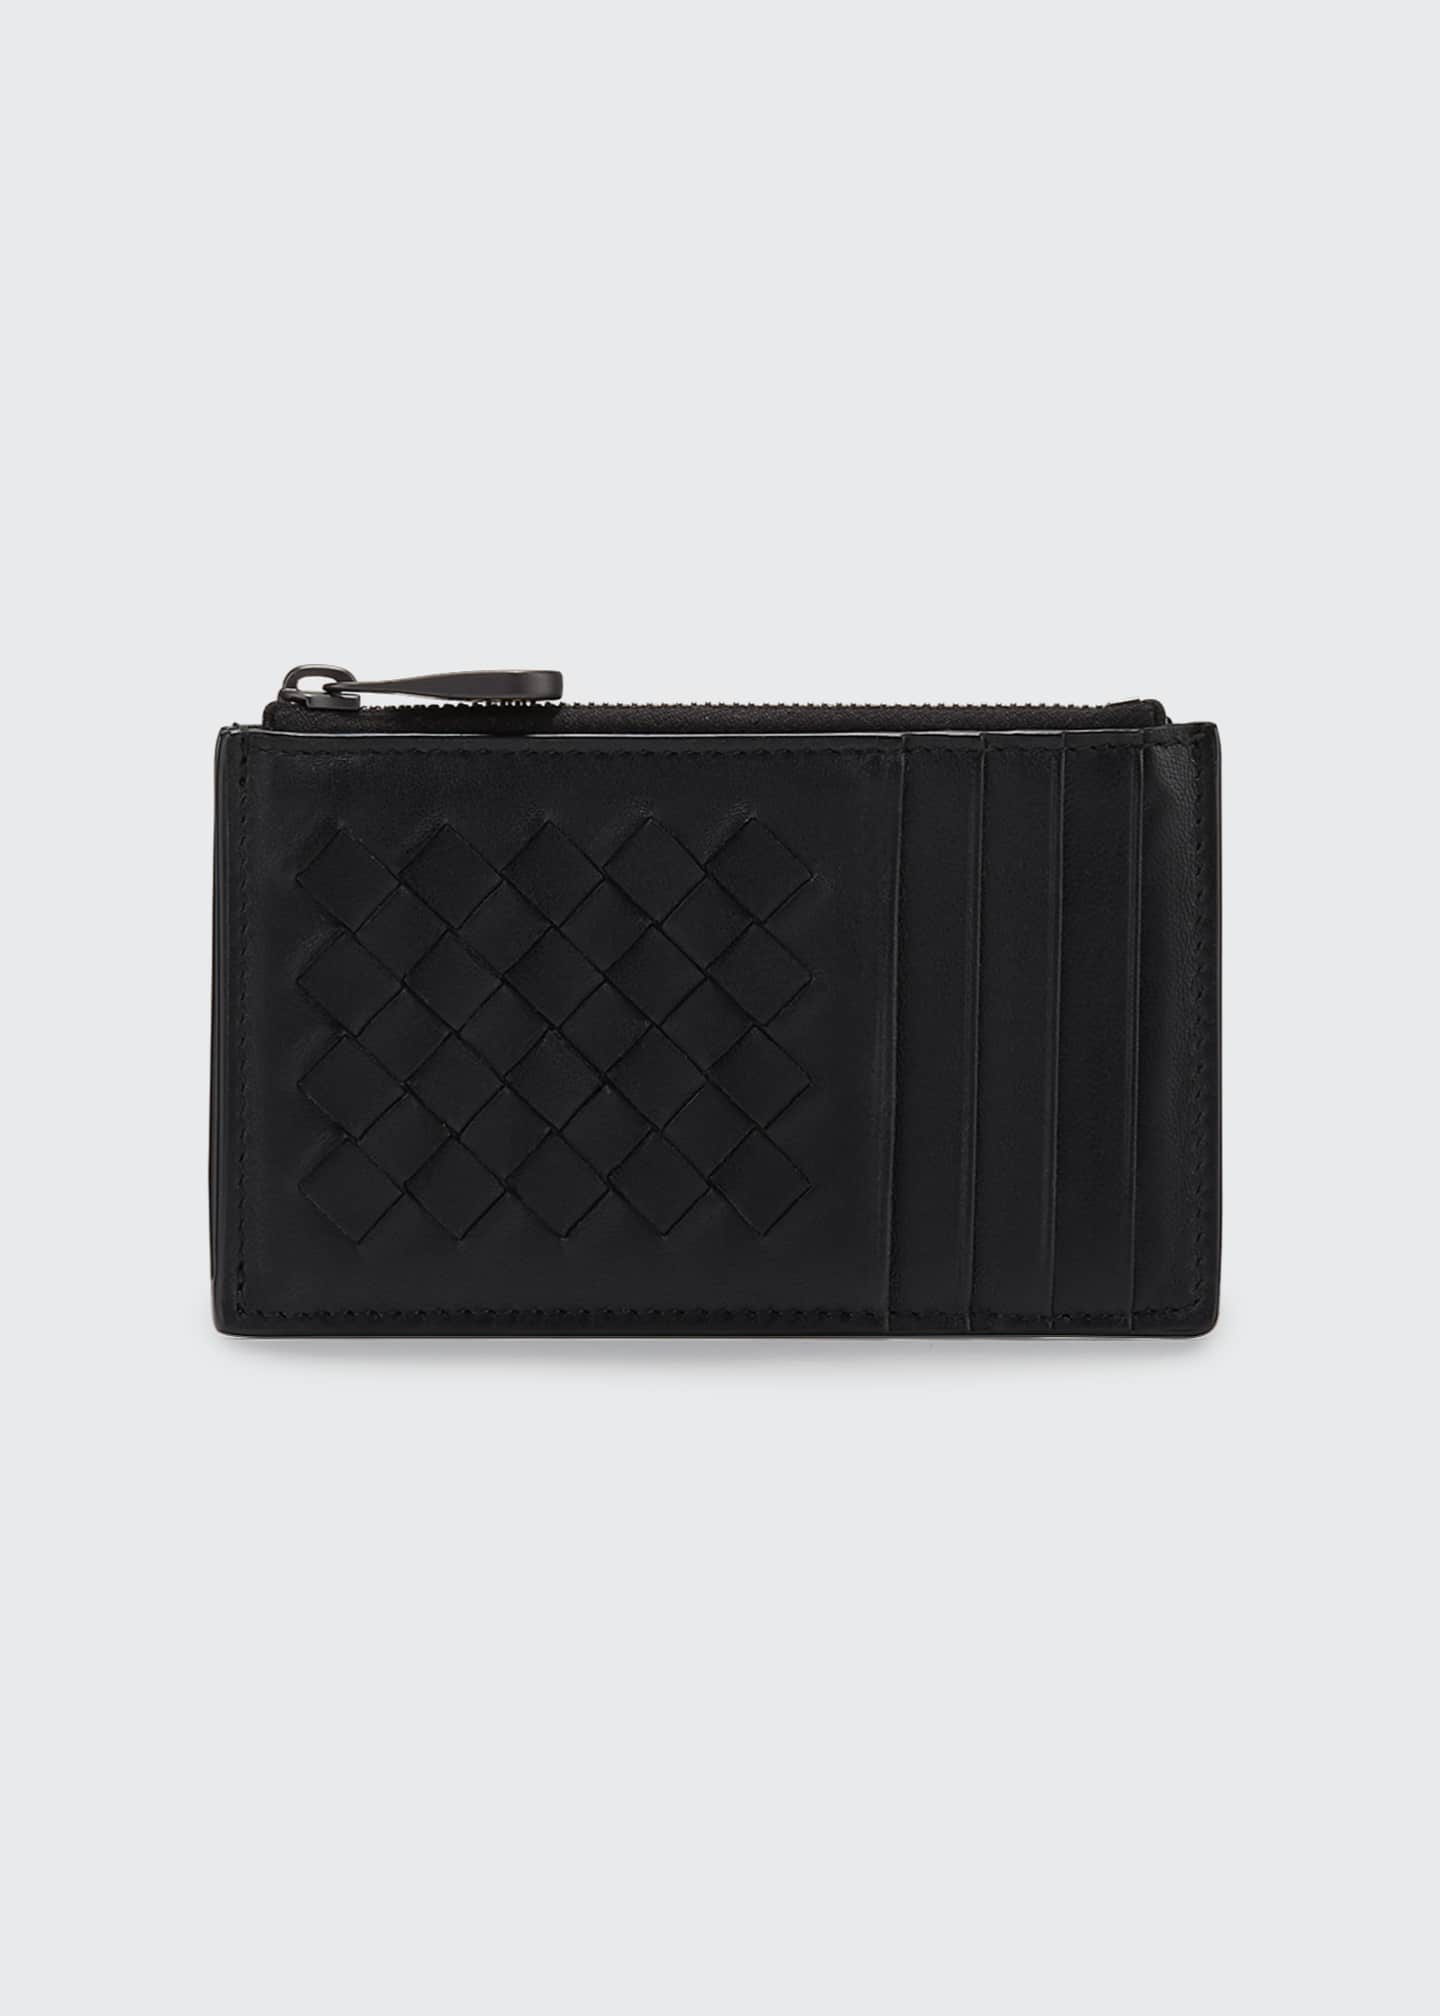 Bottega Veneta Intrecciato Leather Zip Card Case